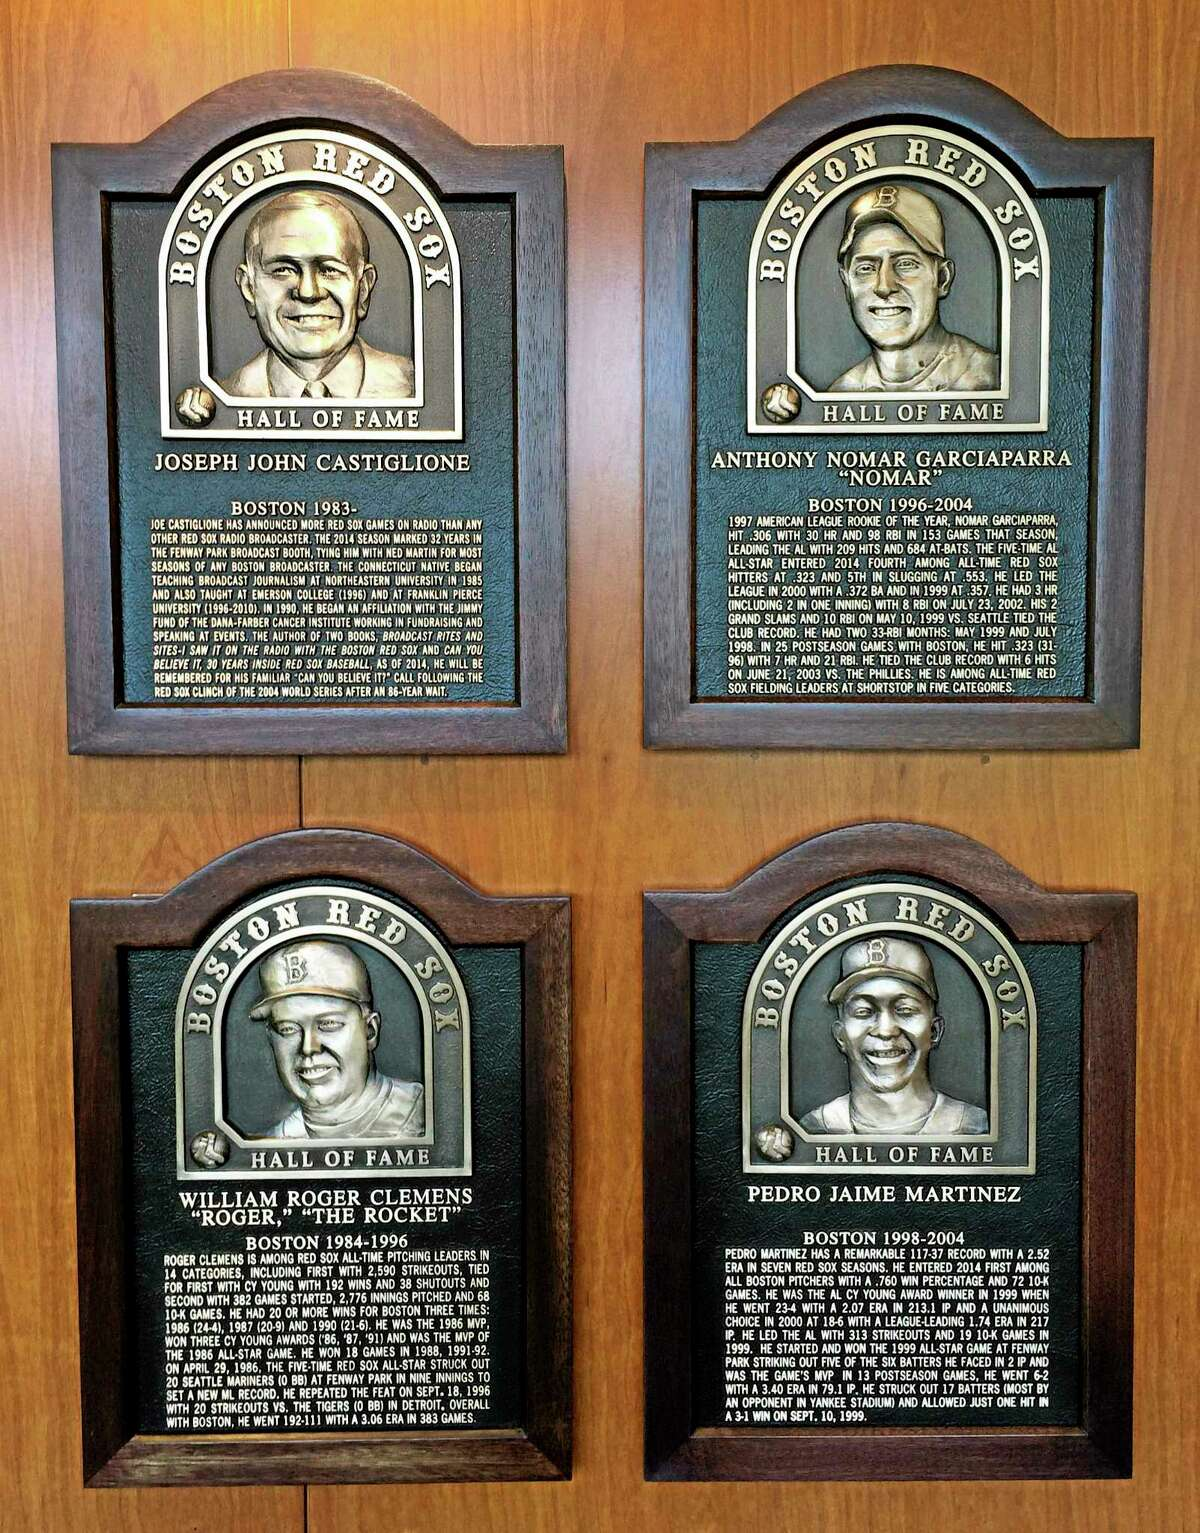 Plaques for 2014 Boston Red Sox Hall of Fame inductees hang at Fenway Park Thursday in Boston. Clockwise from top left are plaques honoring broadcaster Joe Castiglione, shortstop Nomar Garciaparra, pitcher Pedro Martinez and pitcher Roger Clemens.